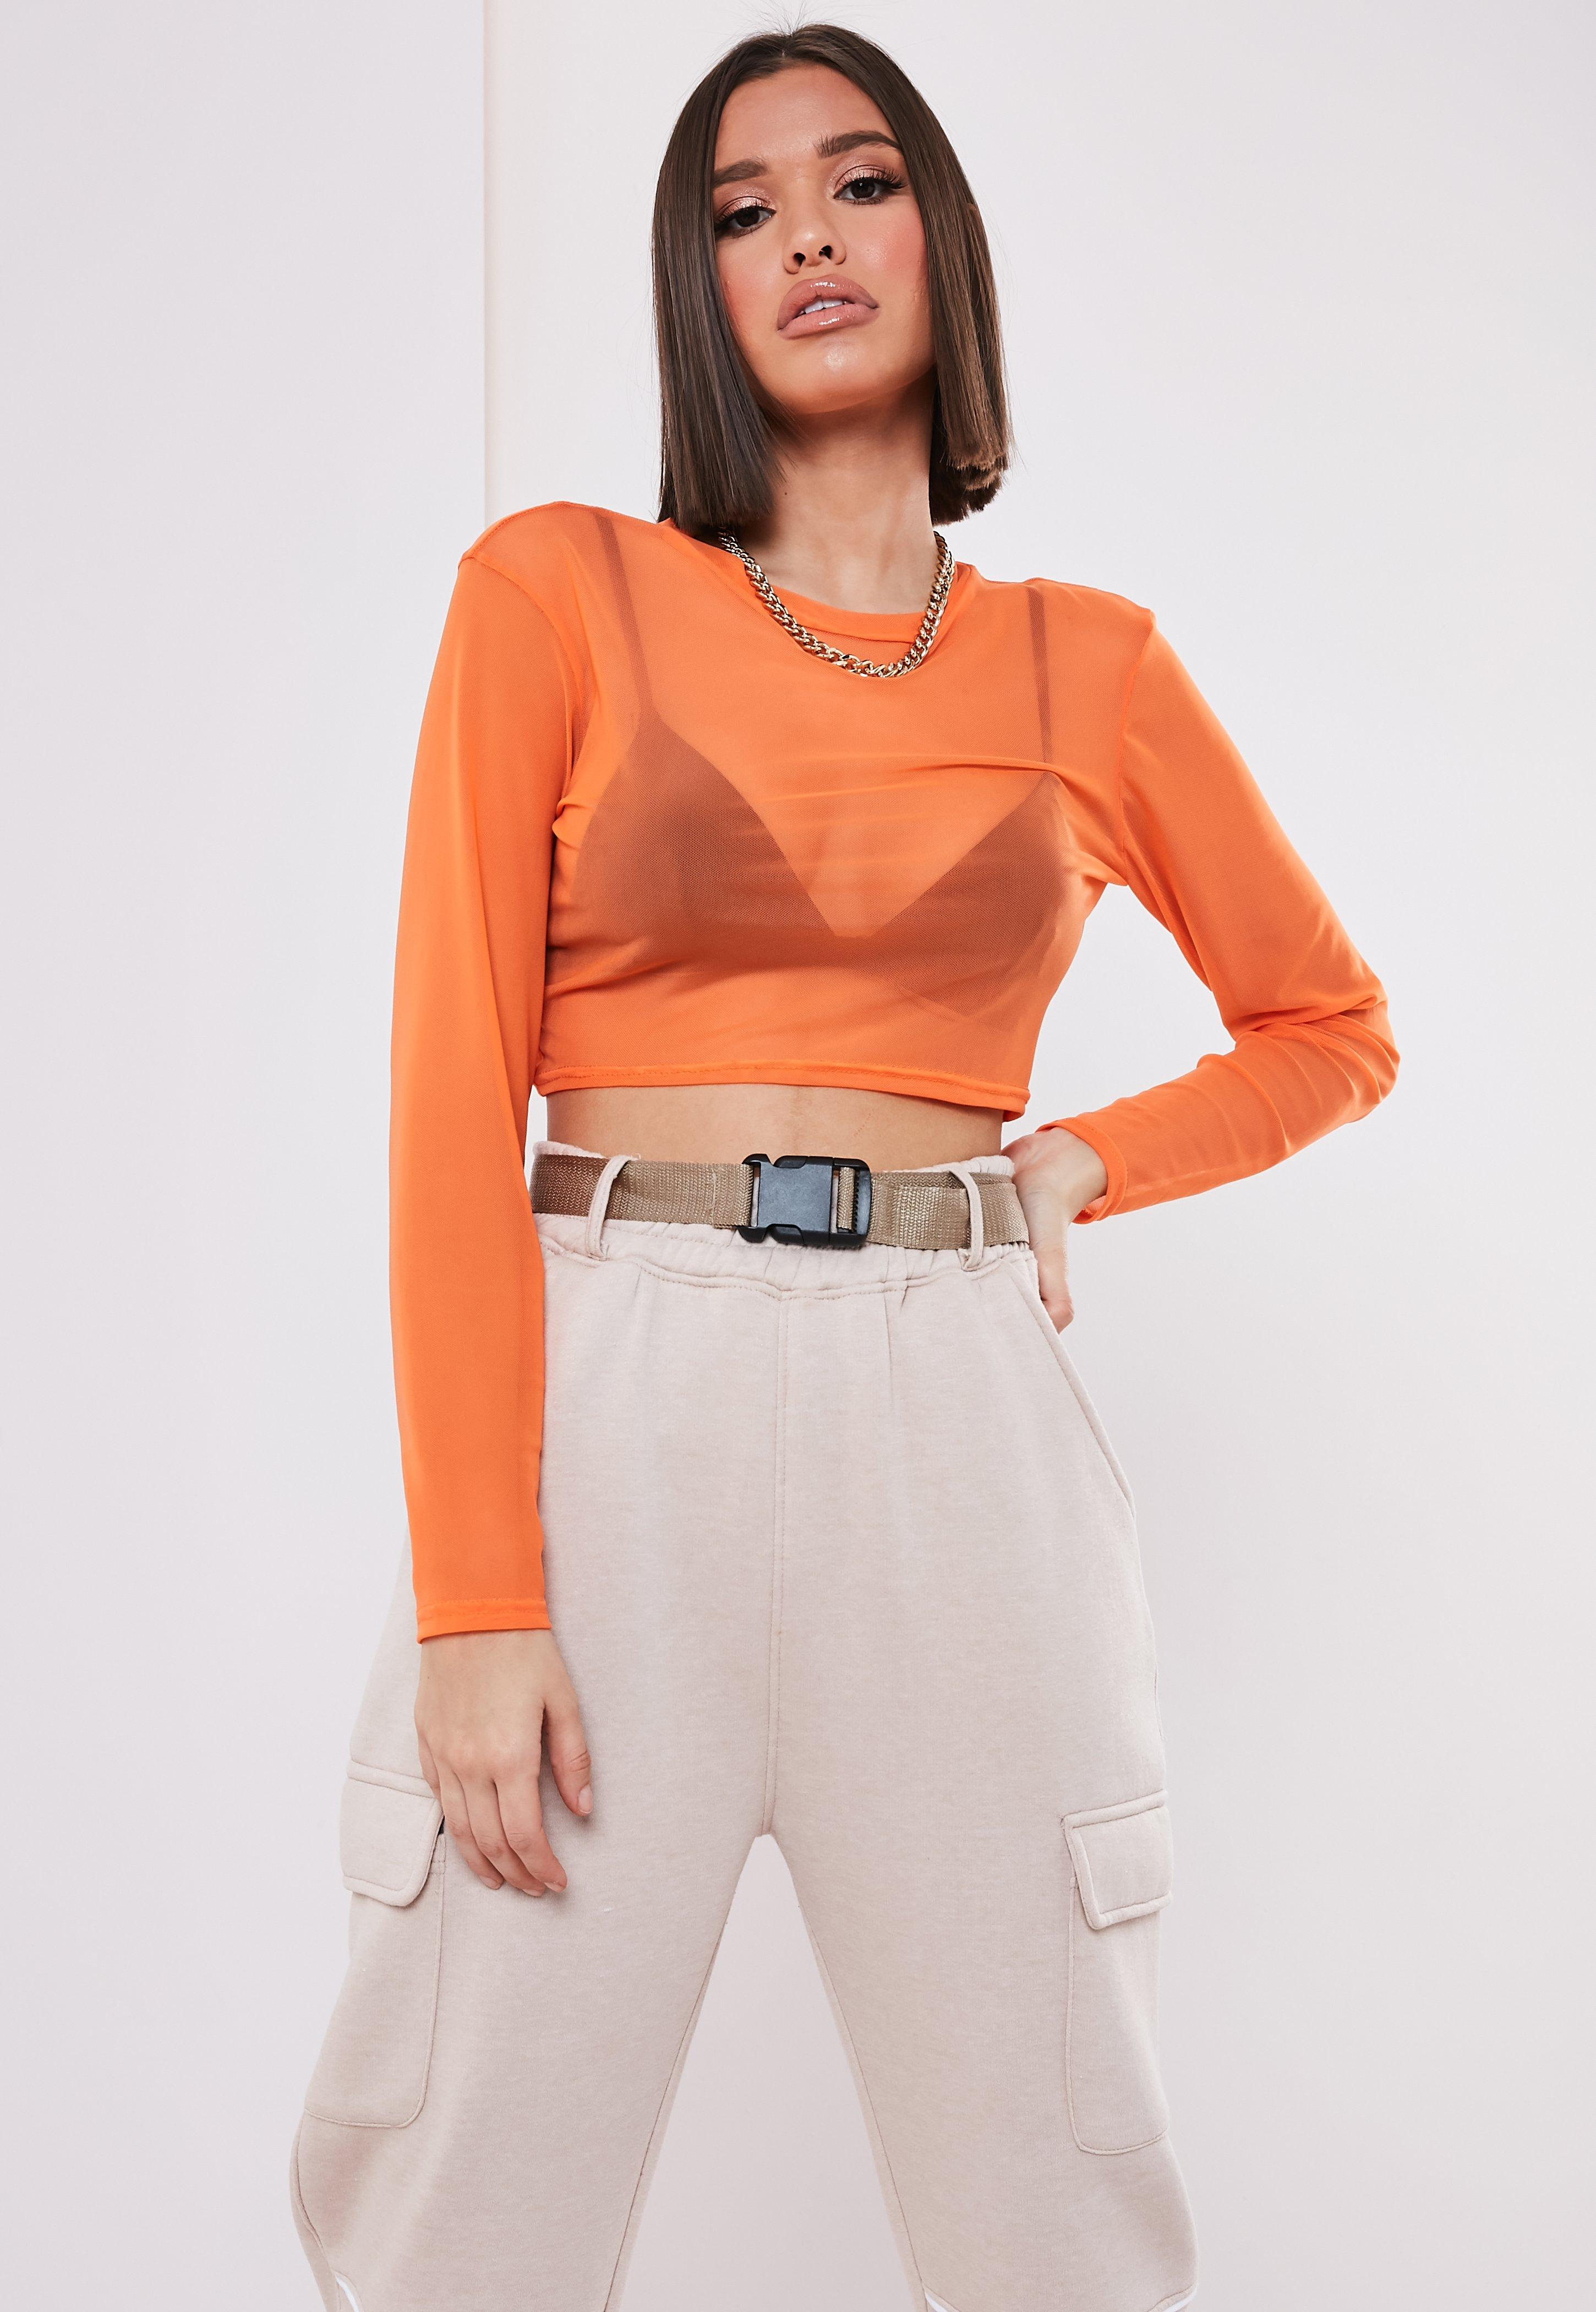 8880717b4ba484 Long Sleeve Tops   Tops with Long Sleeves - Missguided